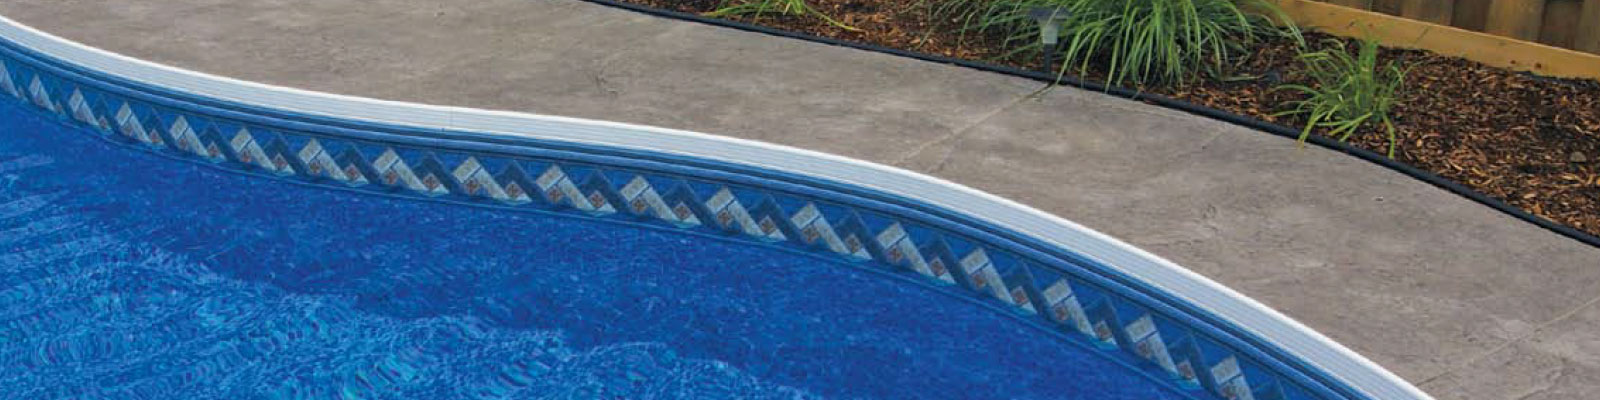 In-Ground Pool Liners in Grand Rapids and Holland MI at Zagers Pool and Spa